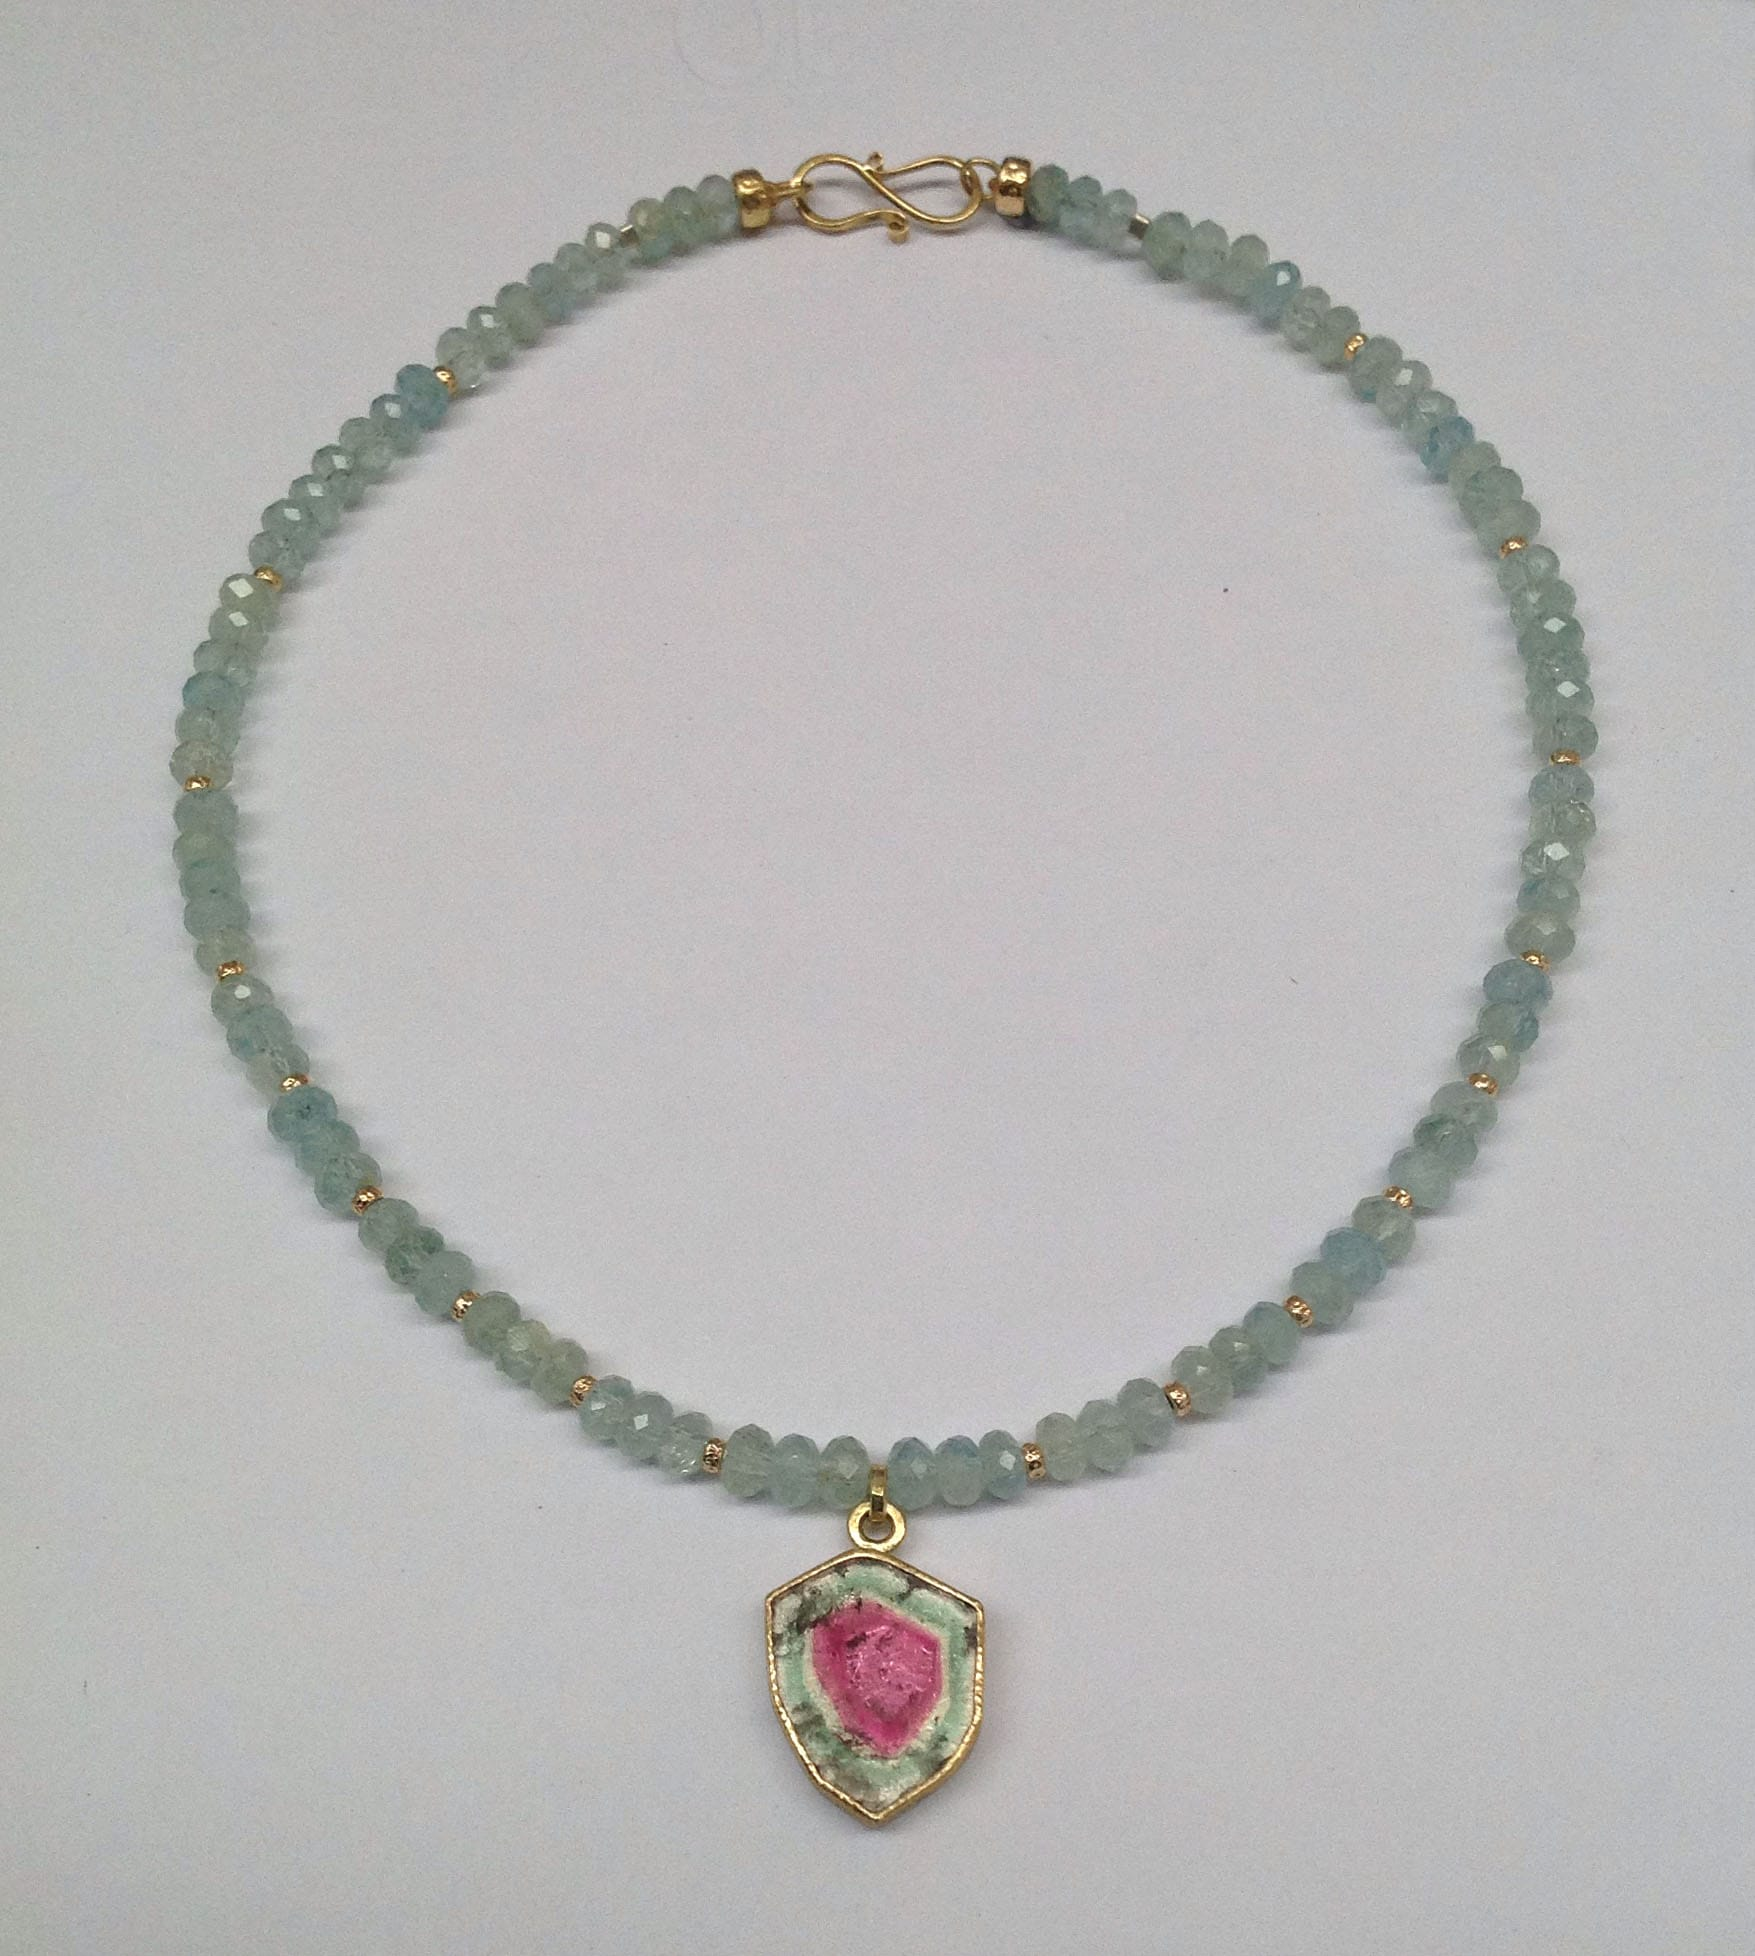 Watermelon tourmaline set in 18 carat yellow gold, faceted aquamarine beads